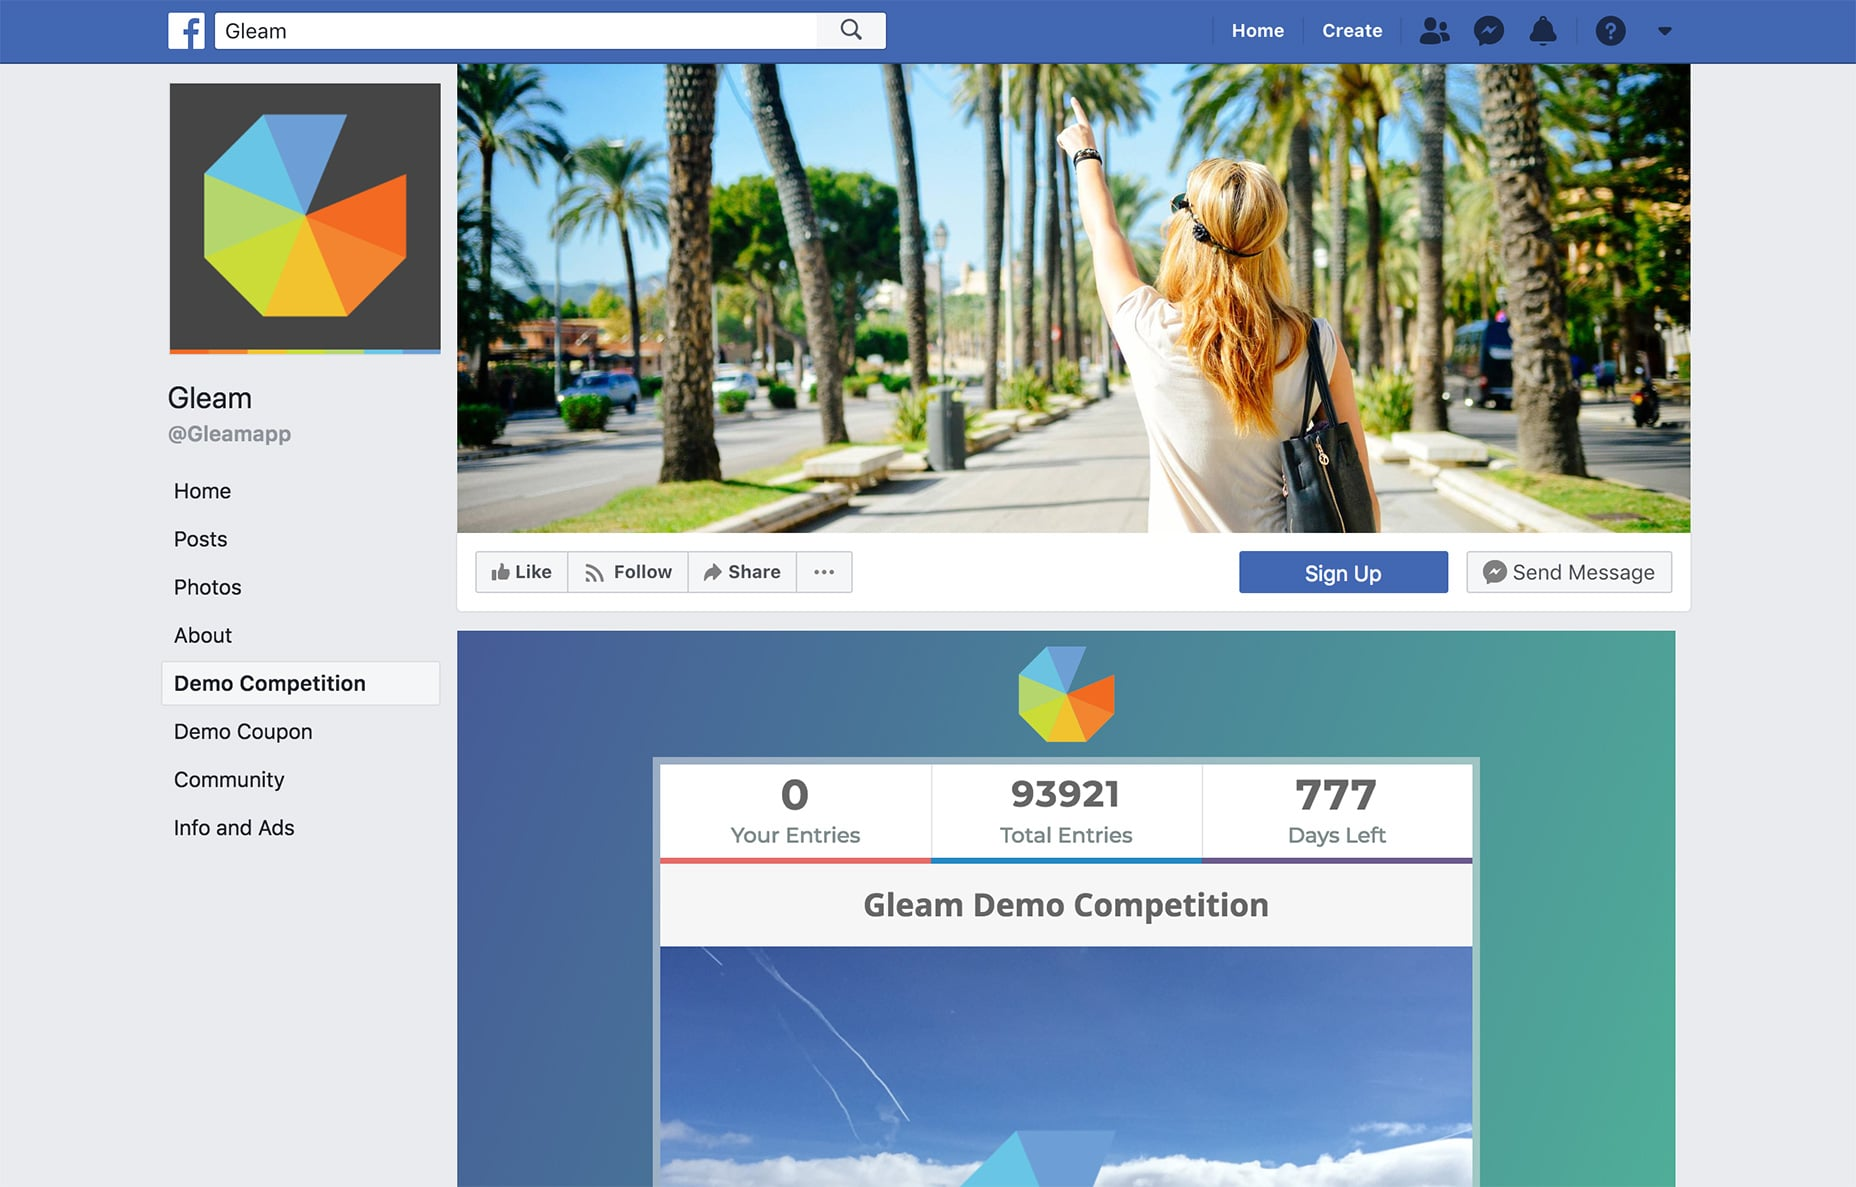 Gleam Giveaway in Facebook Tab